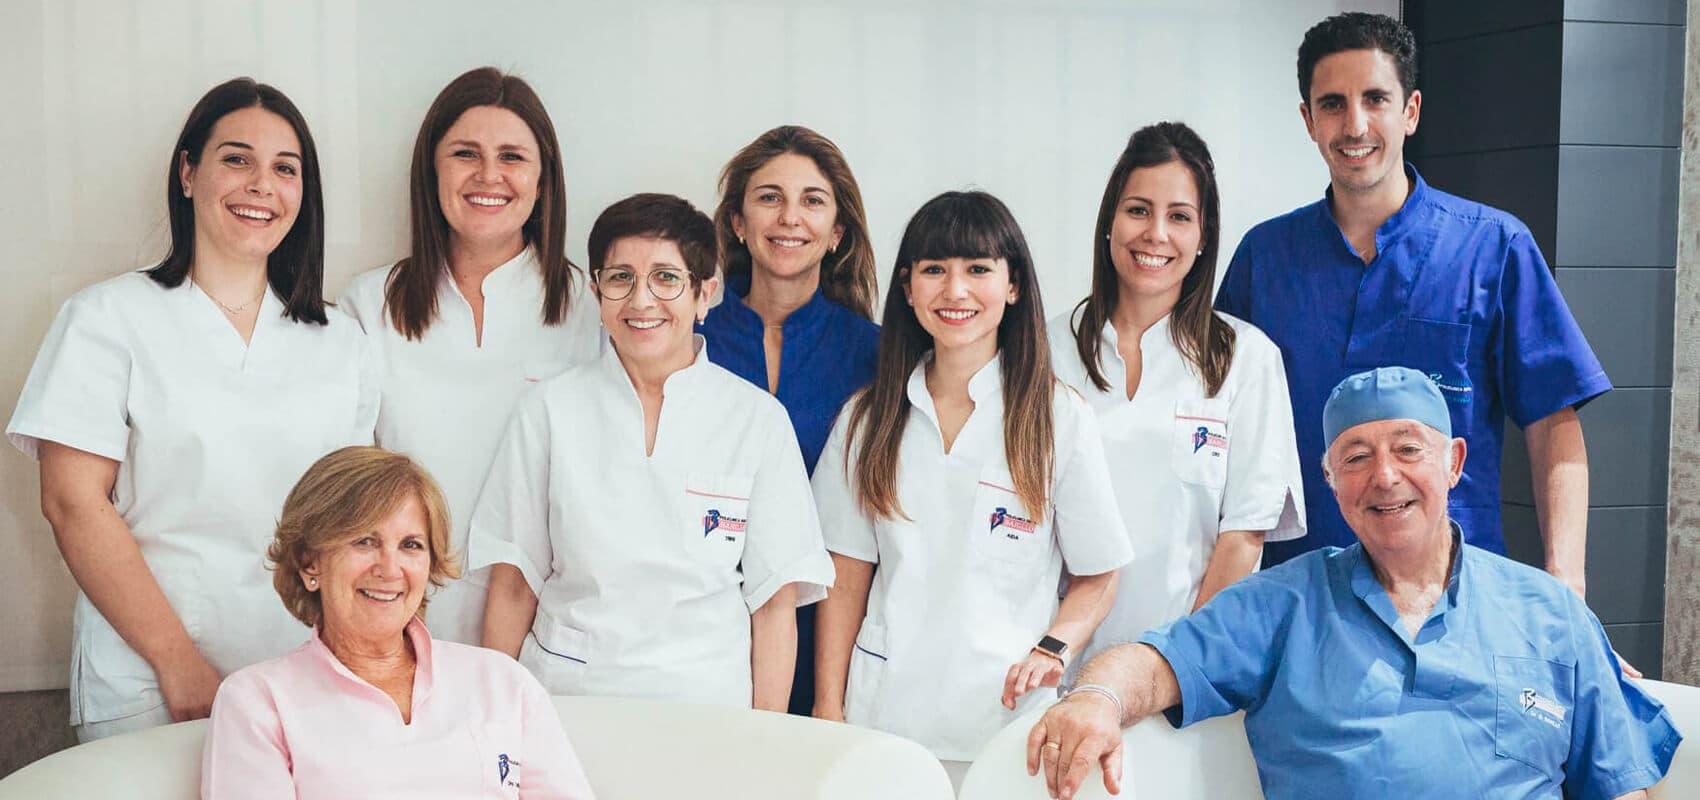 Meet our team of odontologists